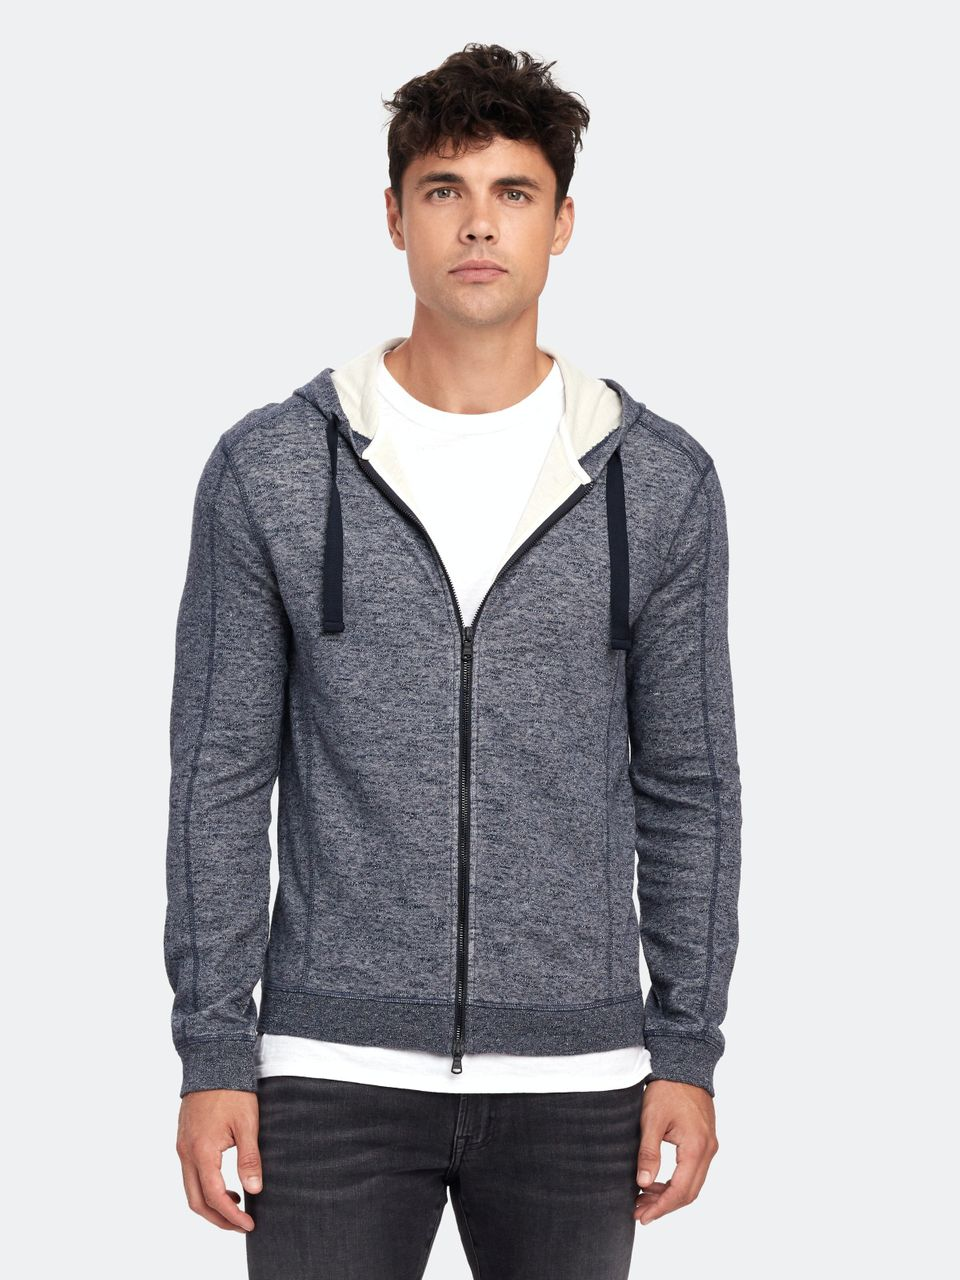 If You're A Nordstrom Fan, You Should Check Out This Verishop Sale 9